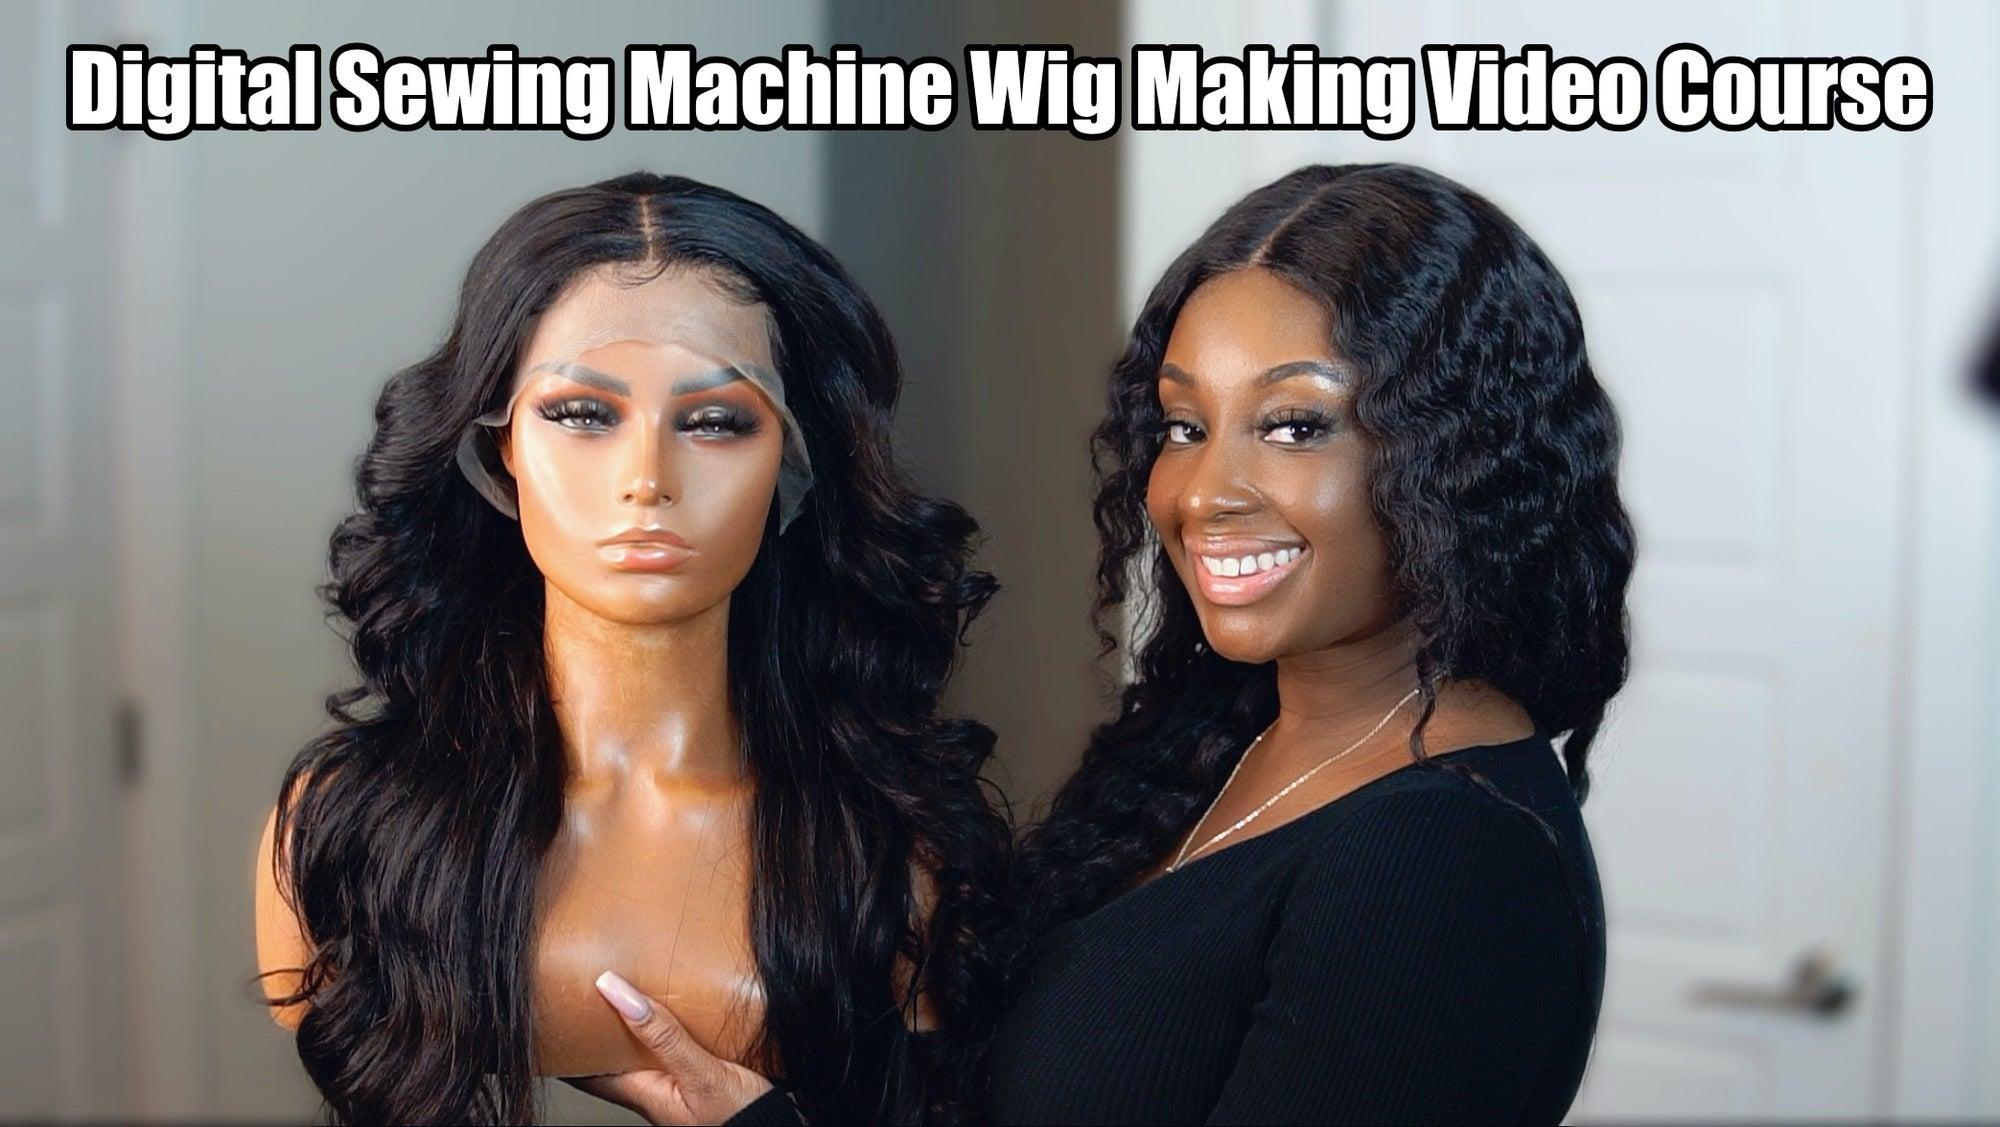 Image of Makeupd0ll's Wig-Making Digital Video Course!